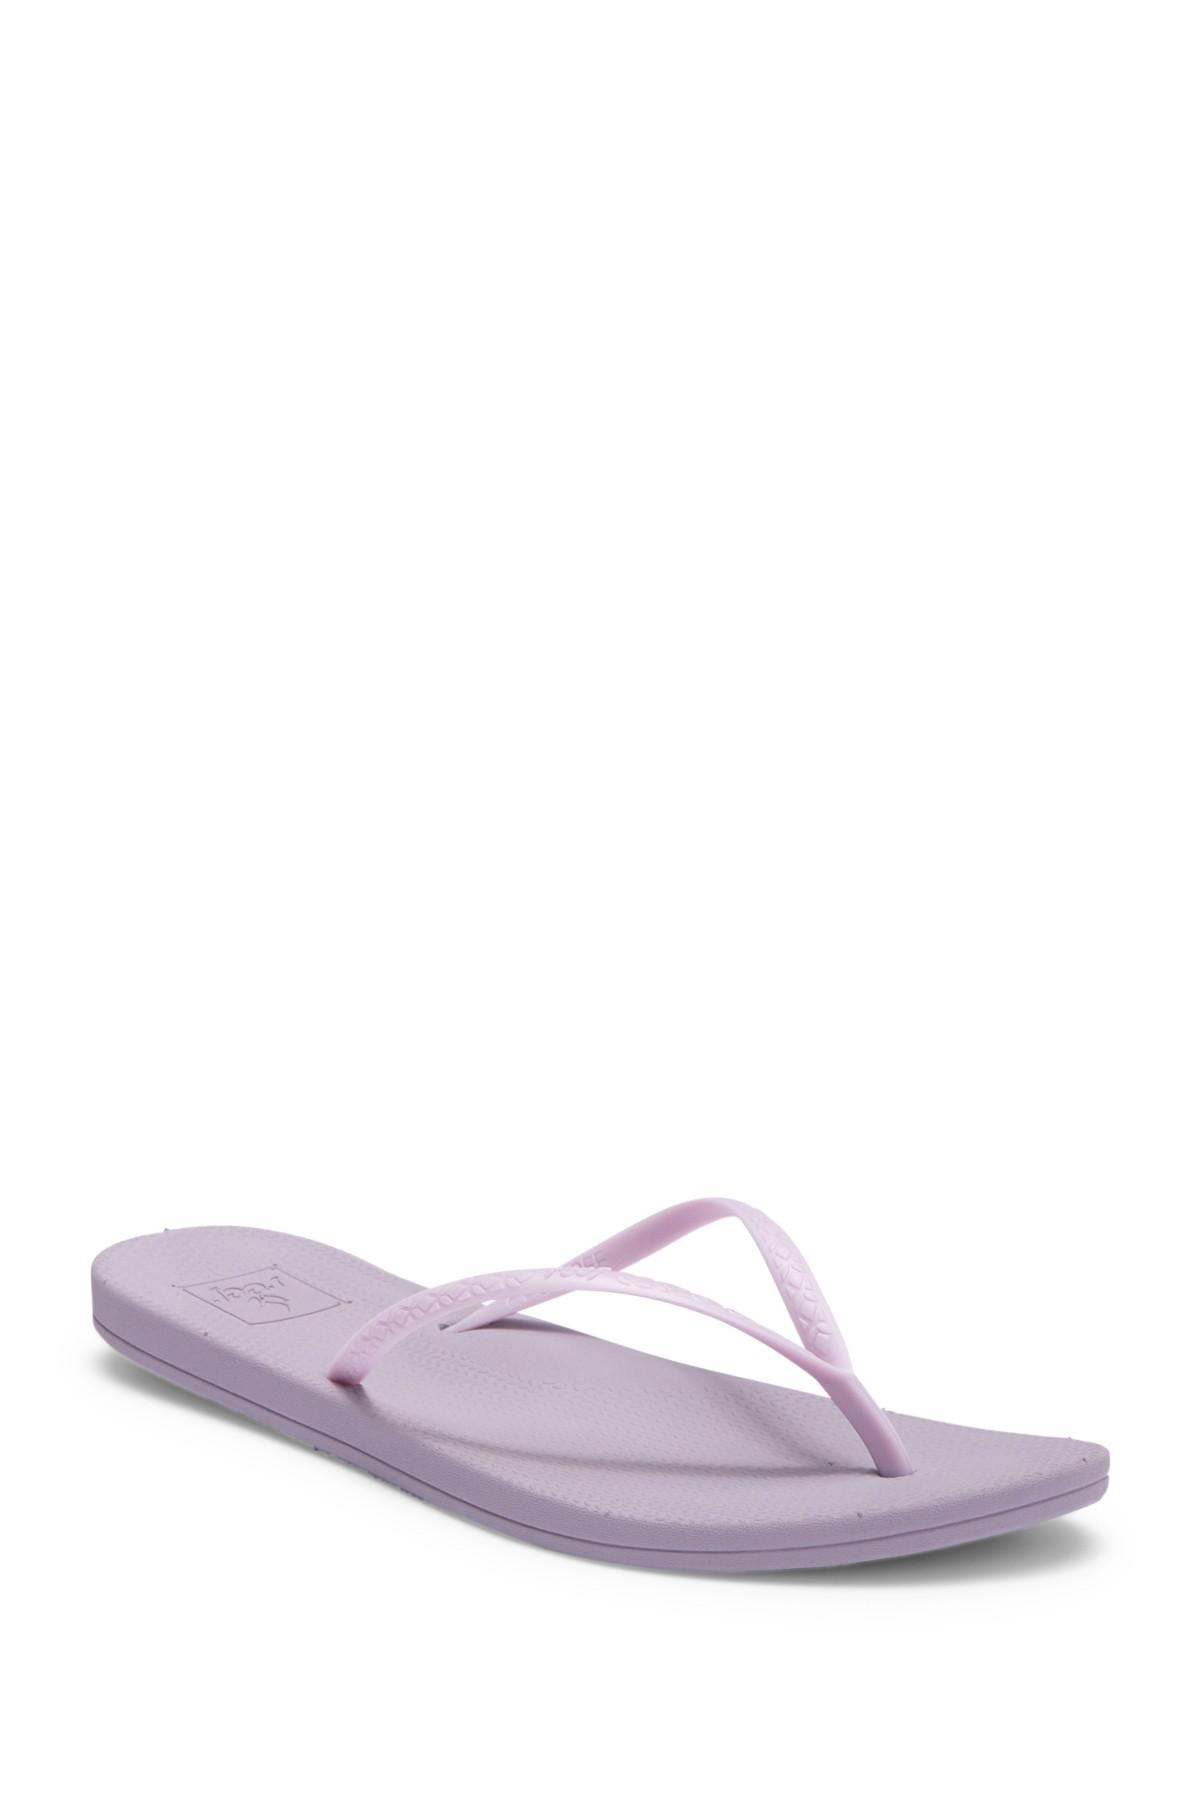 adffbcae718da Reef. Women s Escape Lux Thong Sandal